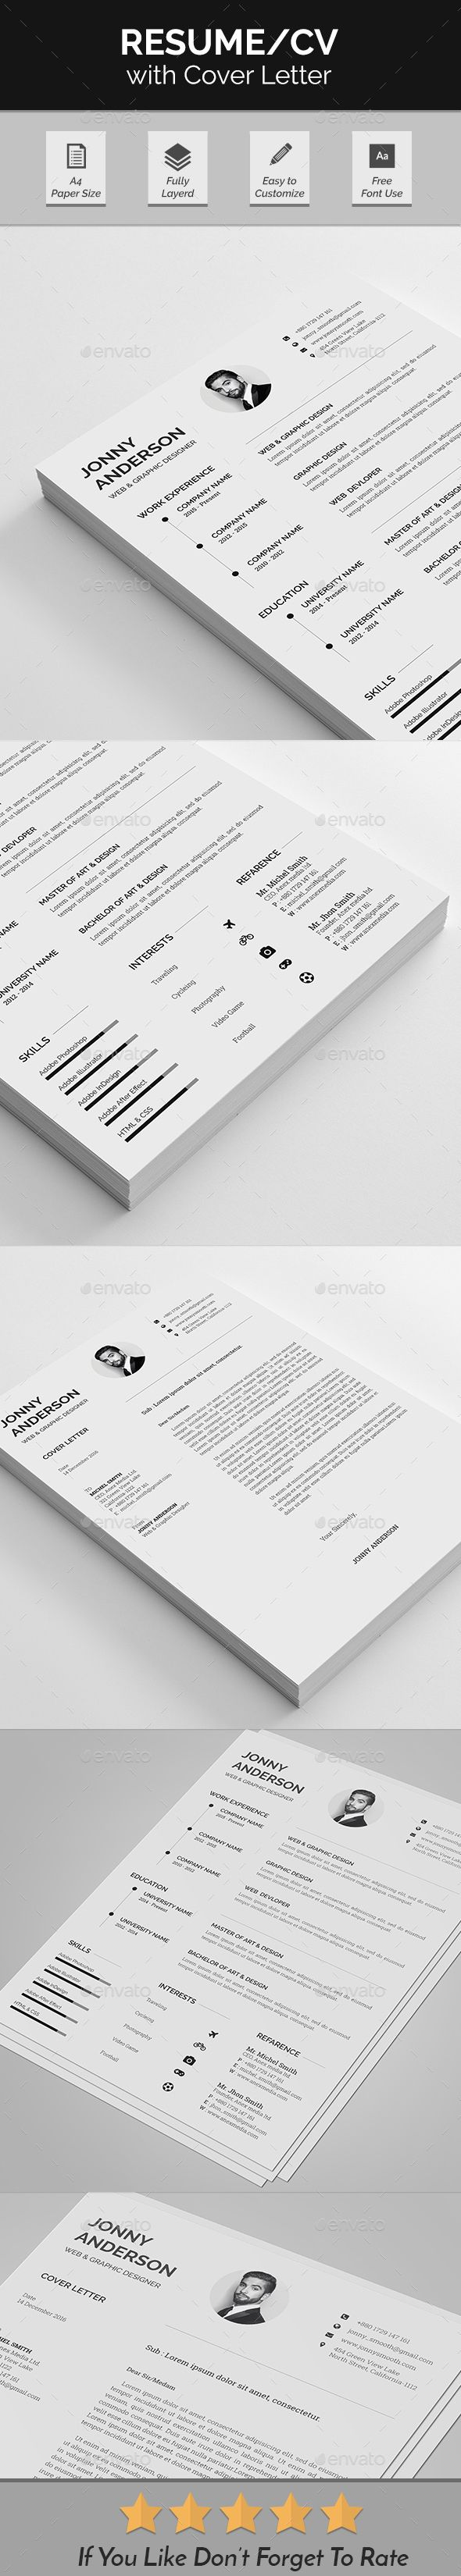 resume cv design template resumes stationery design template psd download here https